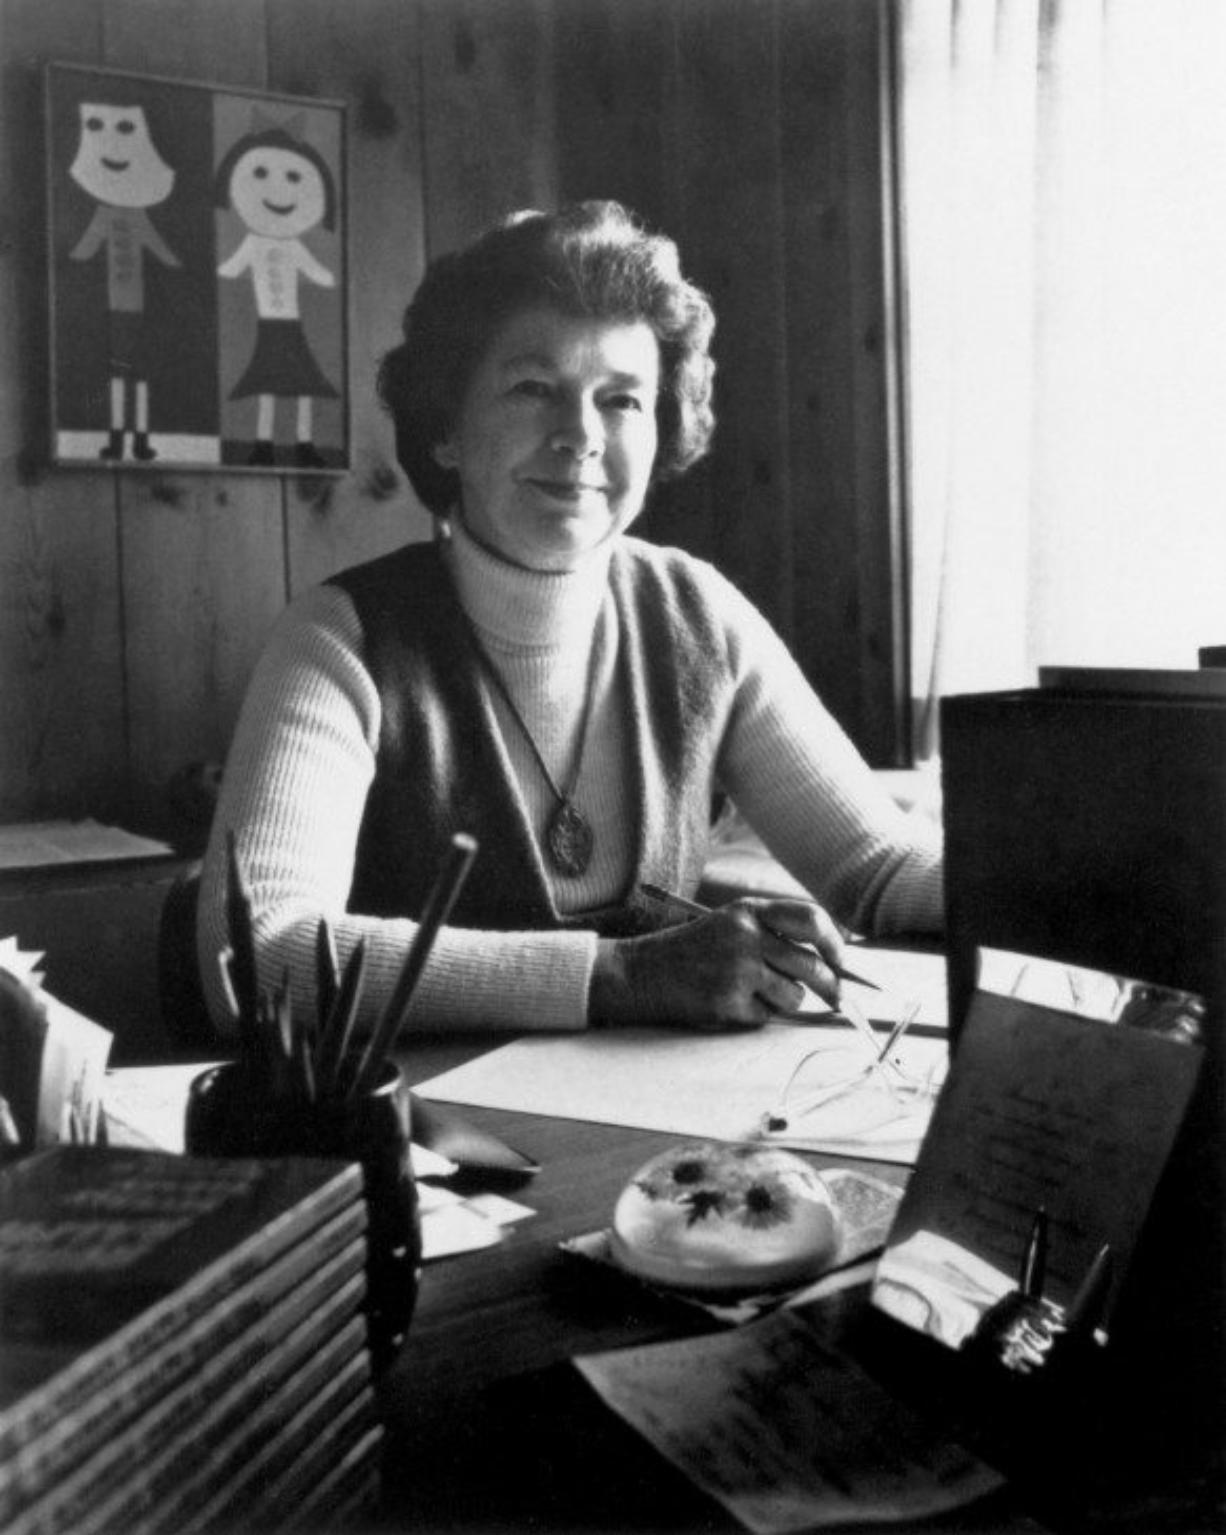 Beverly Cleary, the winner of everything from the Newberry Medal for children's literature to the National Book Award, had a simple secret for literary success: straightforward, realistic, fun stories about ordinary children and everyday experiences.